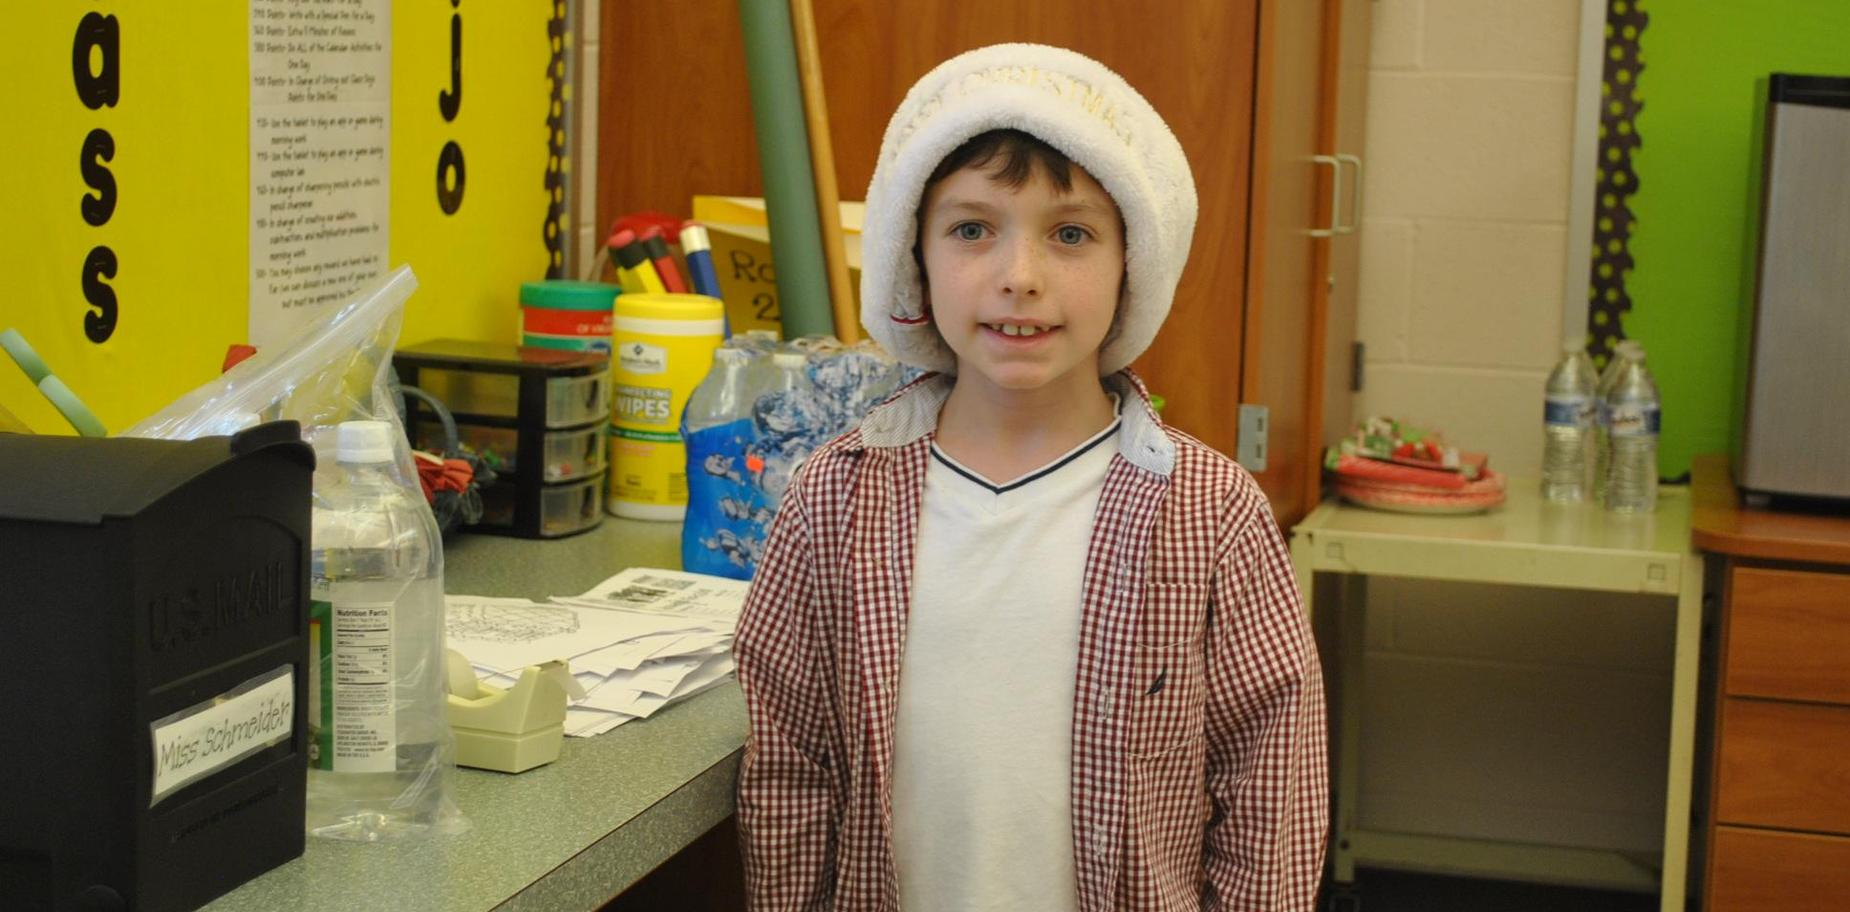 SBPS Student in holiday garb